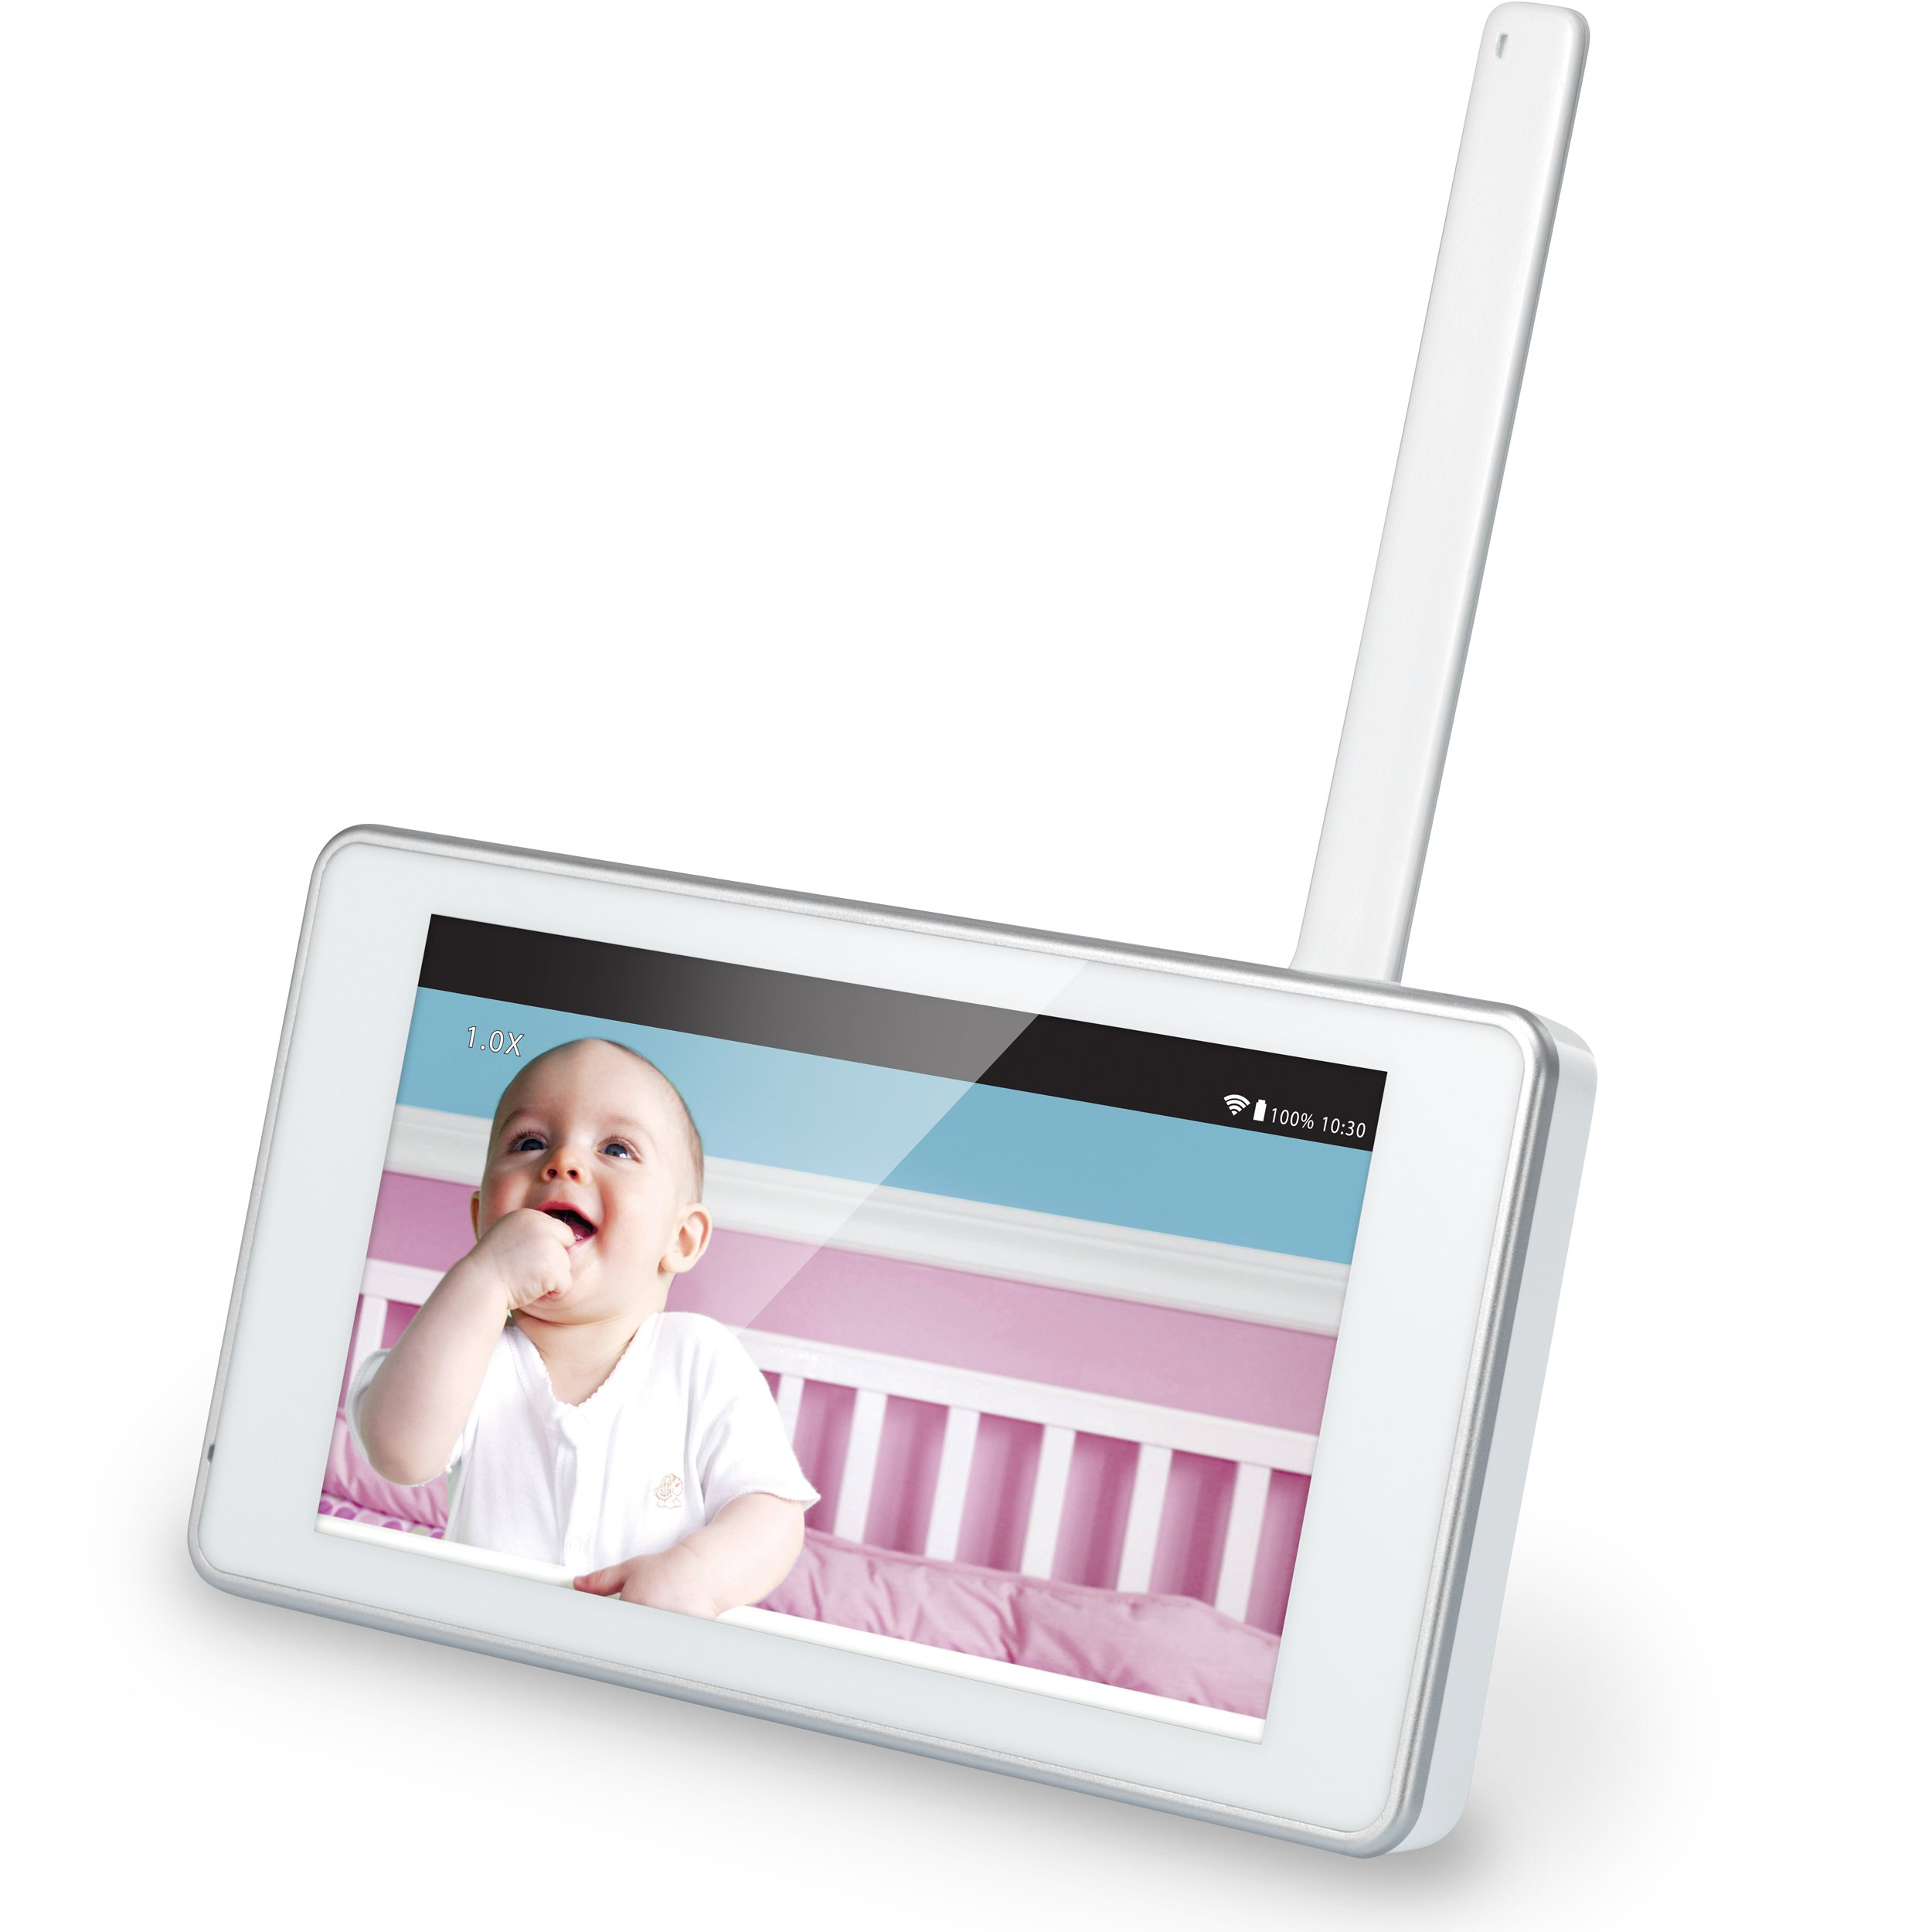 VTech VM991 Wireless WiFi Video Baby Monitor with Remote Access App, 5-inch Touch Screen, Remote Access Pan, Tilt & Zoom, Motion Alerts & Support for up to 10 Cameras by VTech (Image #13)